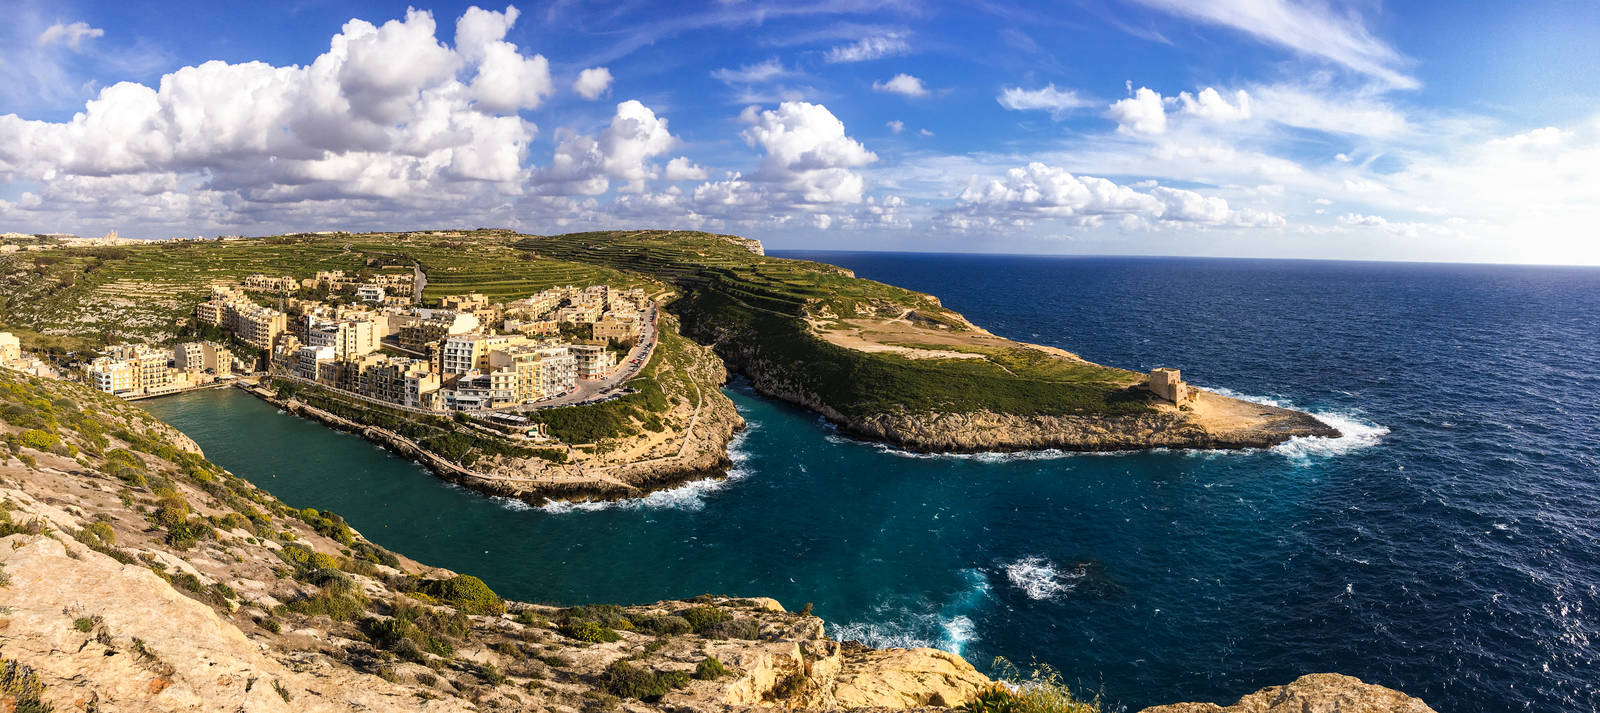 Panorama of Xlendi from above on the cliffs